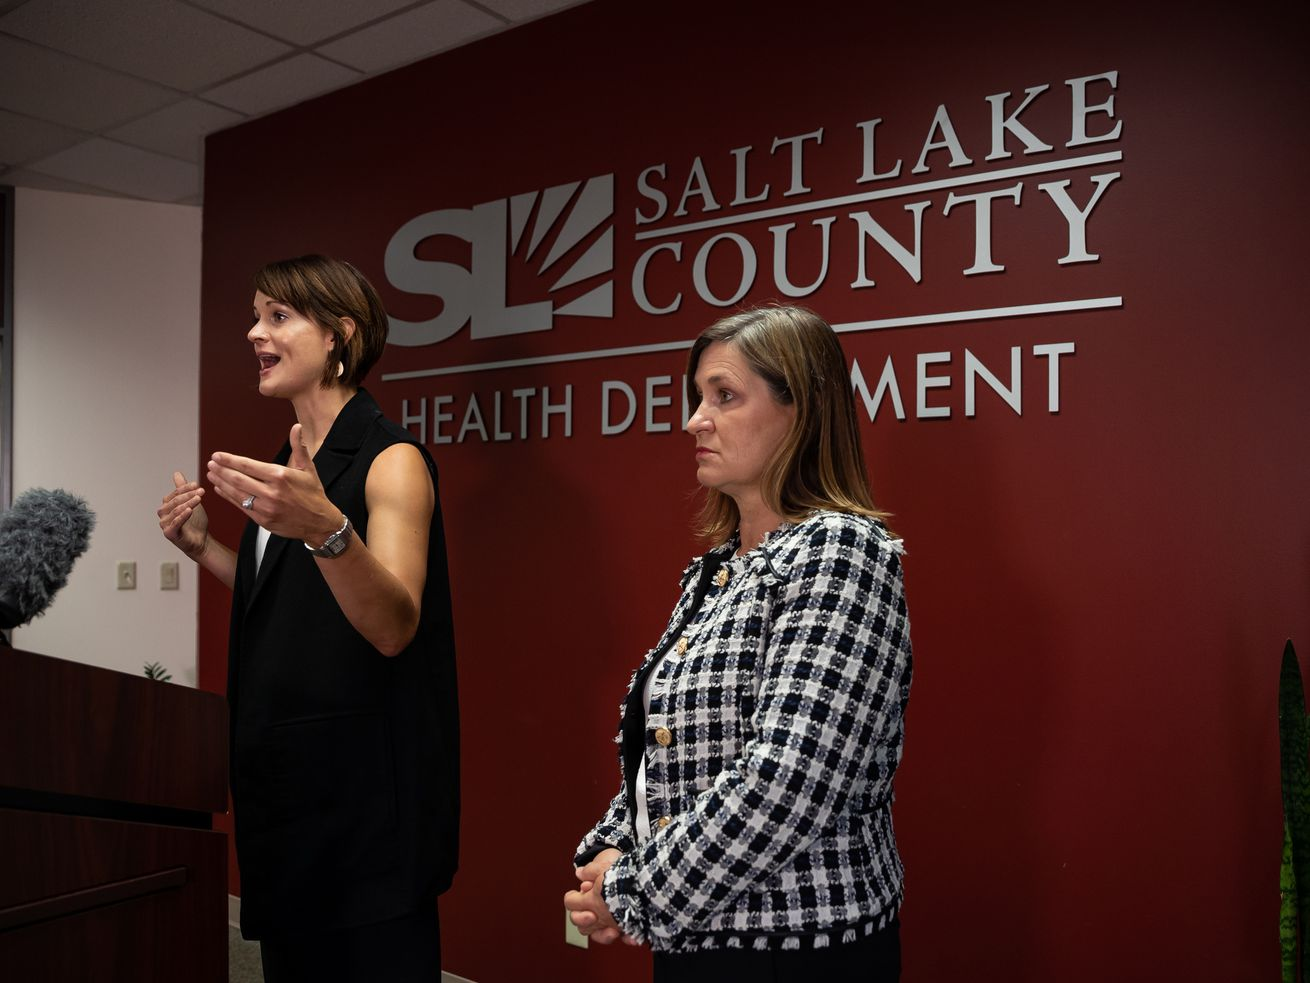 Salt Lake County Health Department Executive Director Dr. Angela Dunn, left, speaks during a COVID-19 briefing with Salt Lake County Mayor Jenny Wilson at her side at the Salt Lake County Government Center in Salt Lake City on Thursday, July 22, 2021.